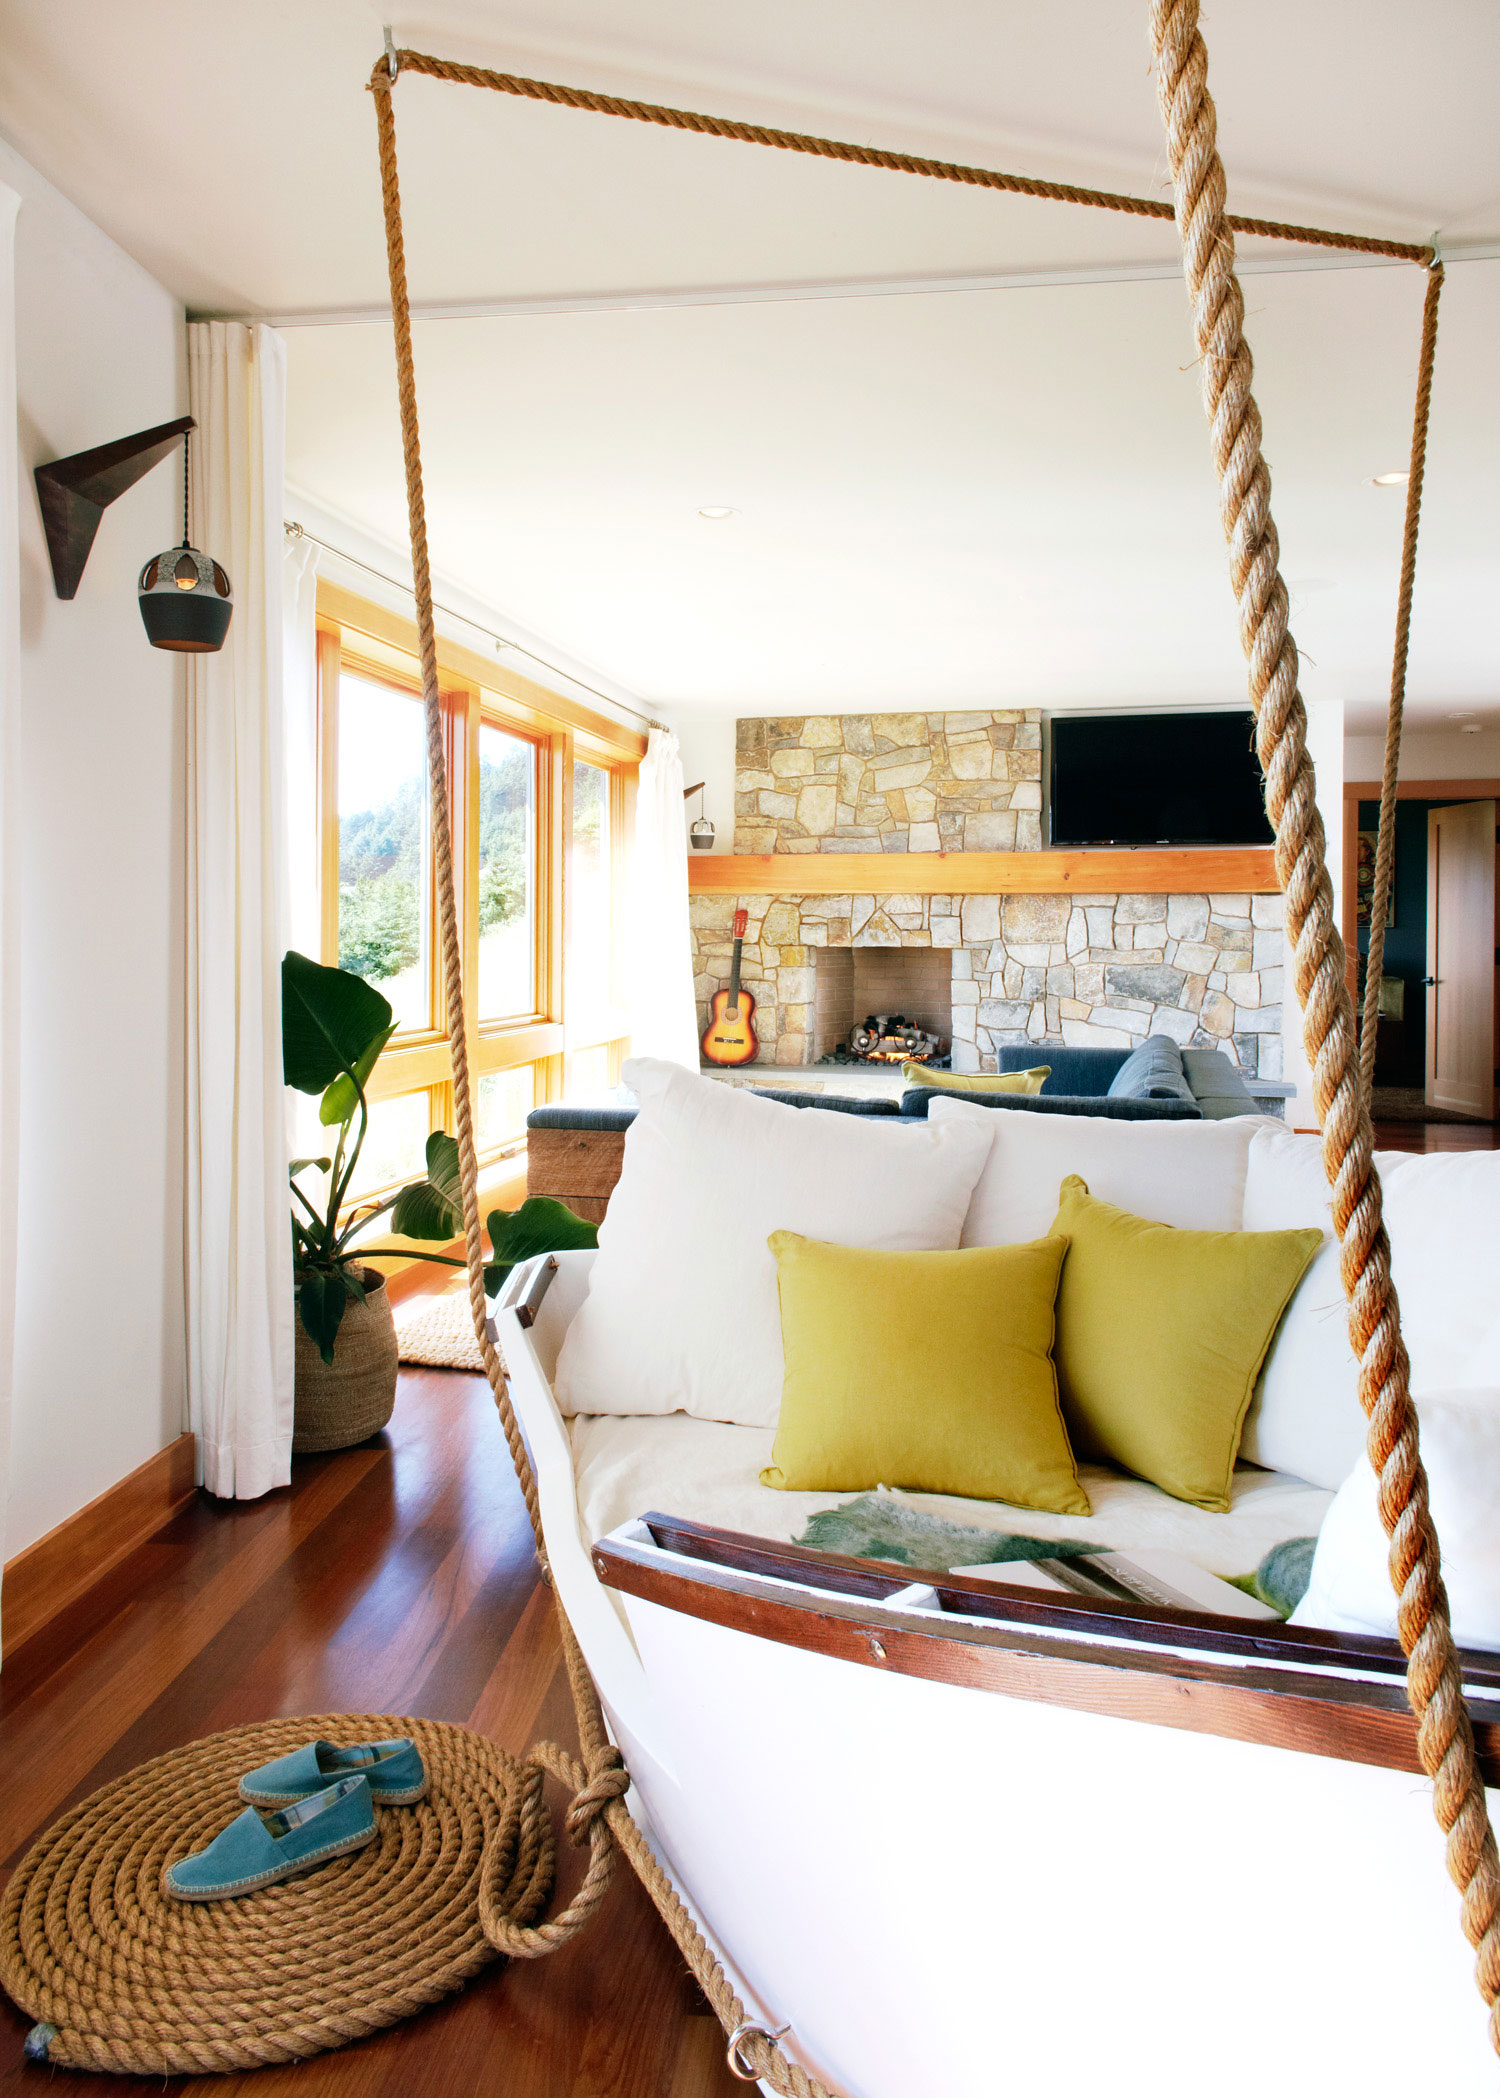 Beach-inspired decorating ideas